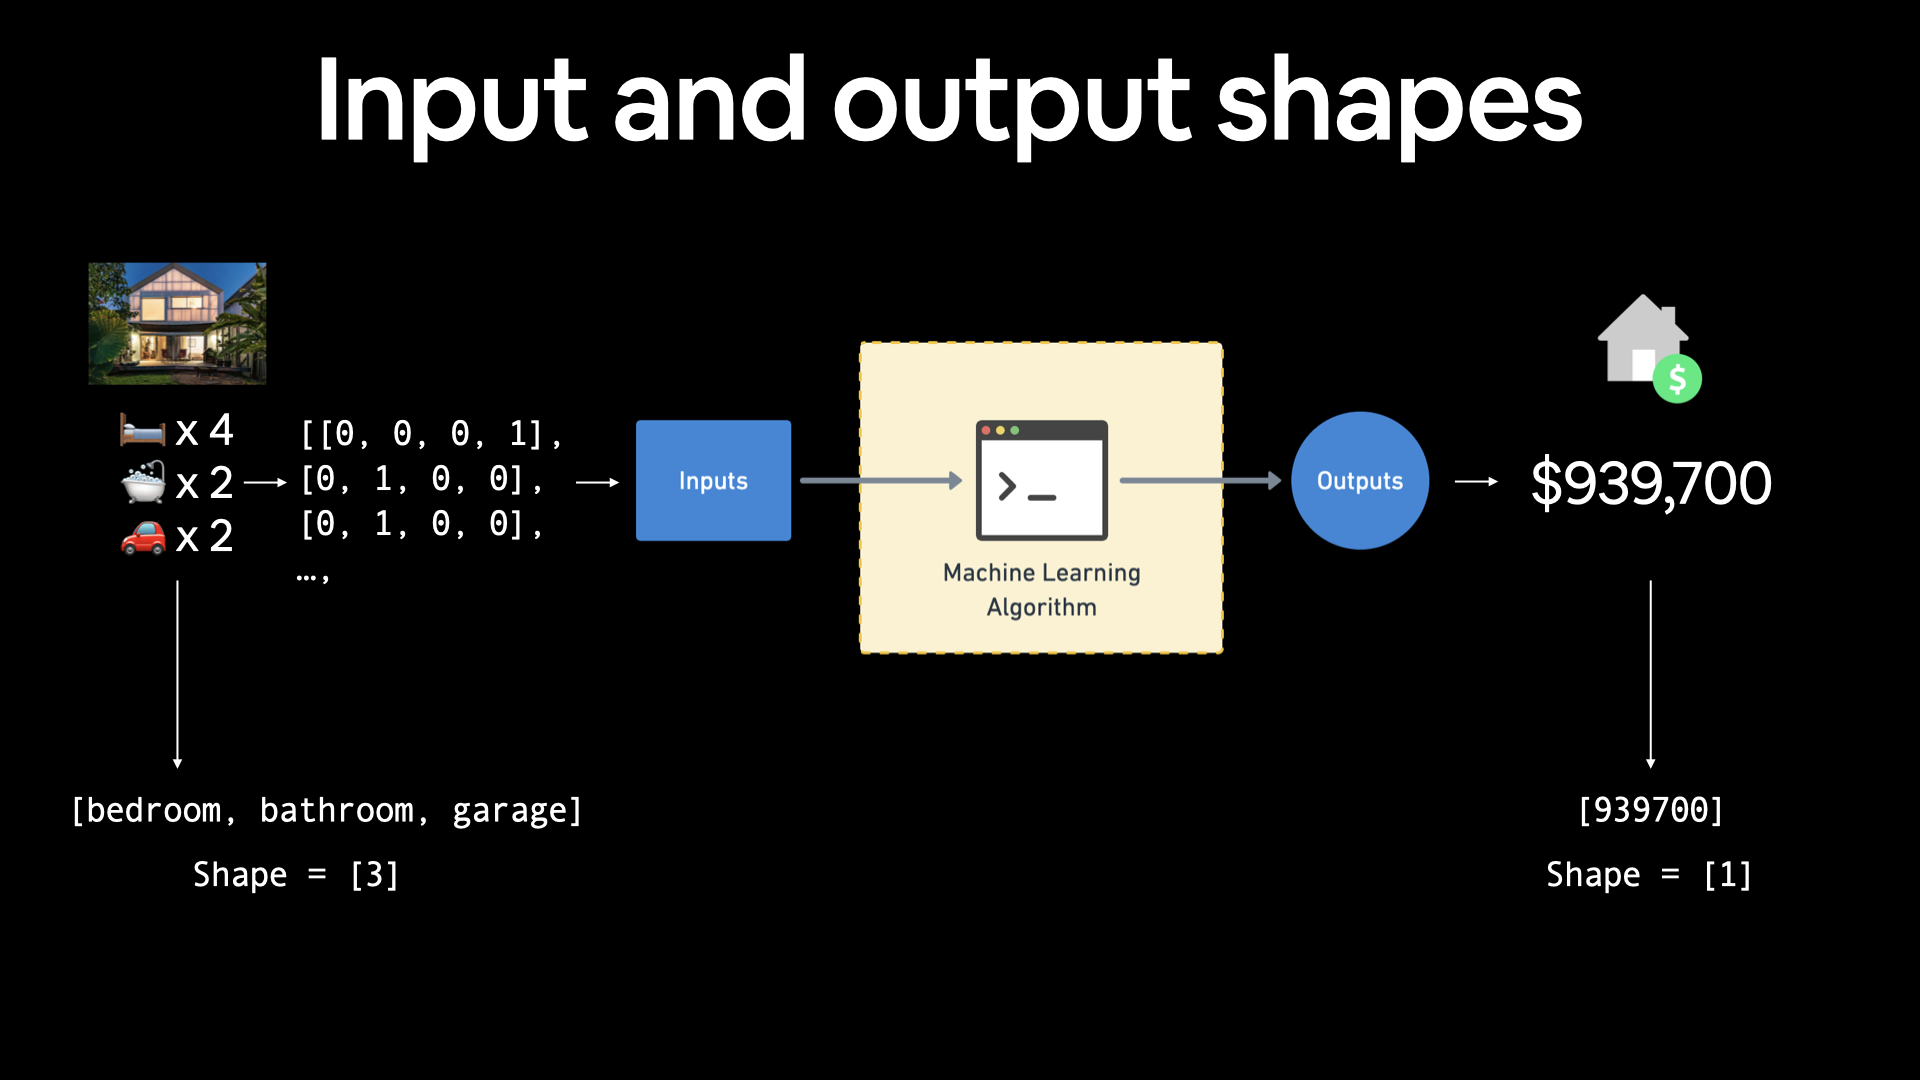 example of input and output shapes for a housing price prediction problem